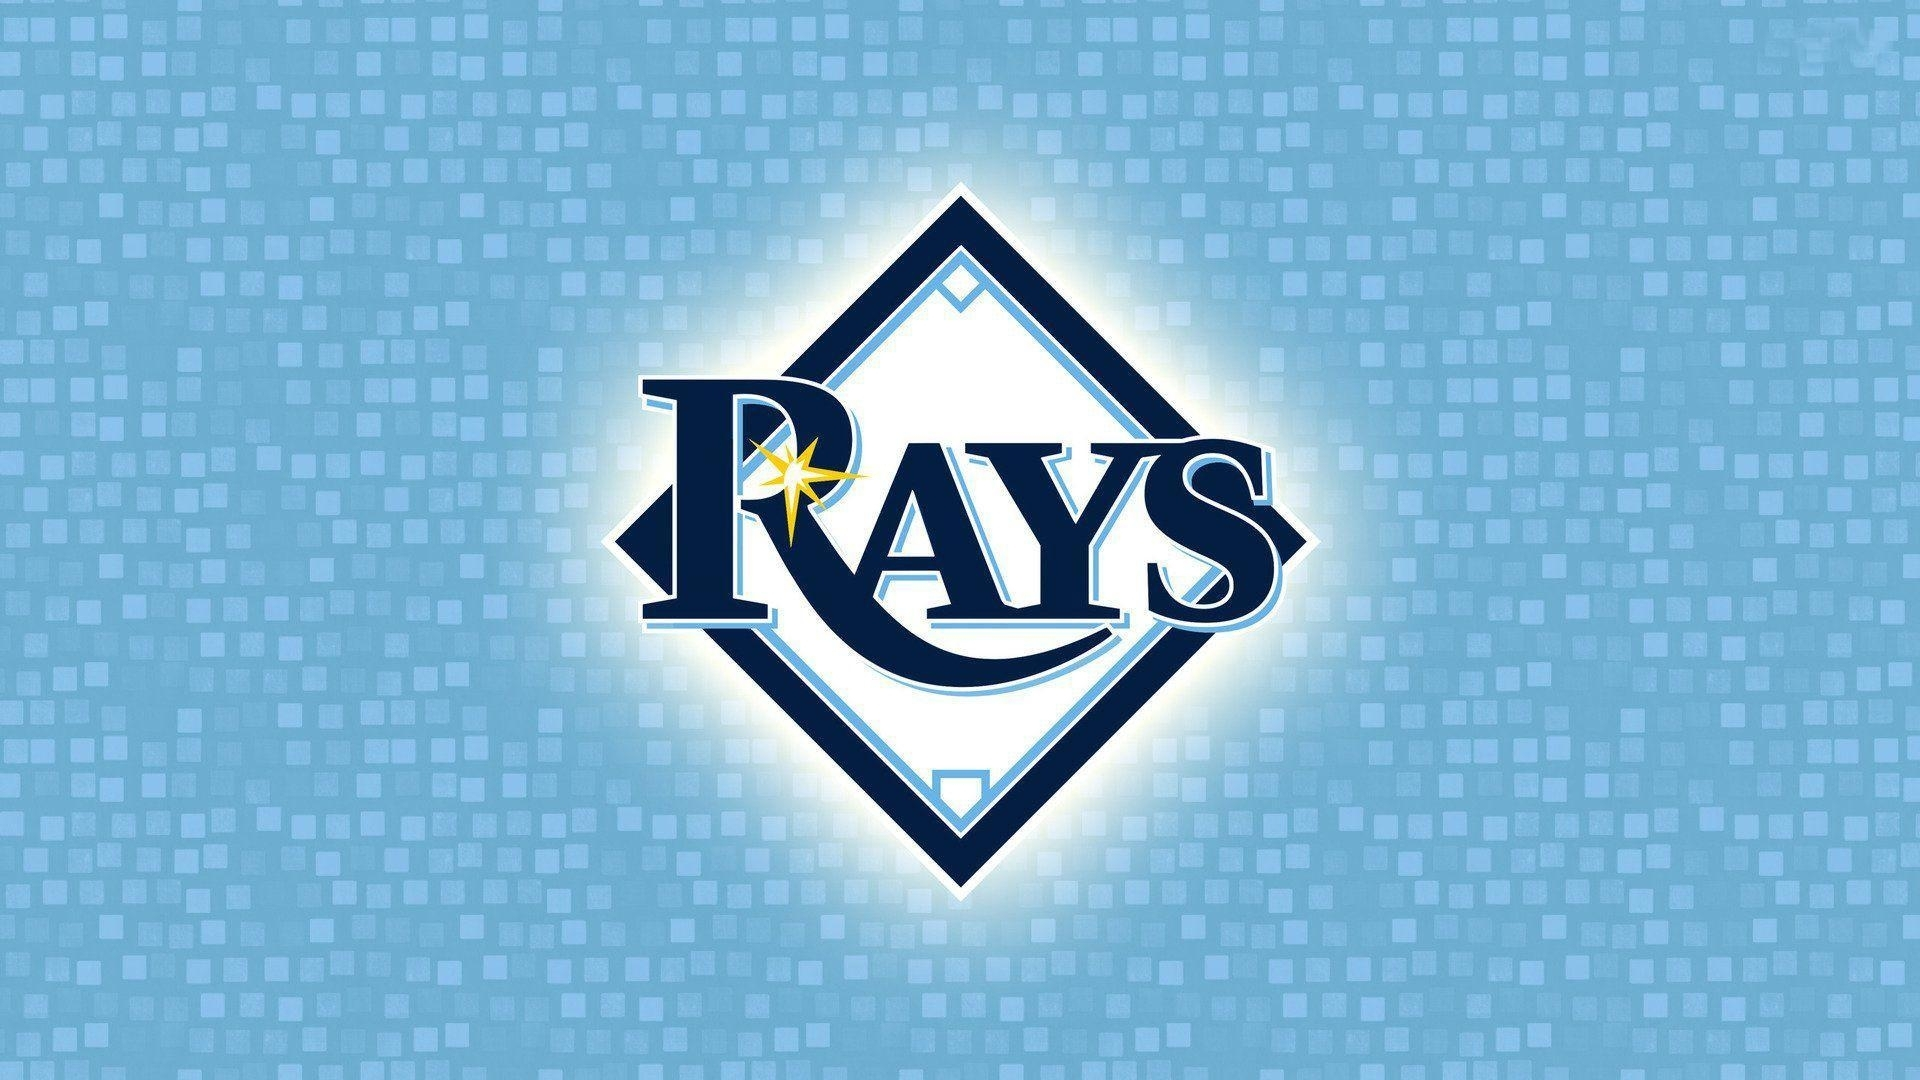 tampa bay rays wallpapers - wallpaper cave